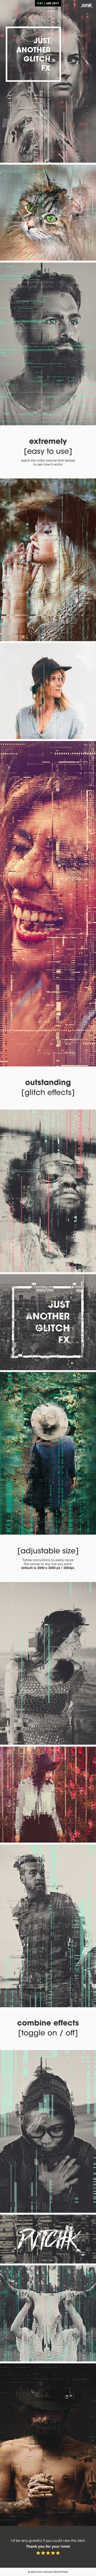 Just Another Glitch FX — Layered PSD #portfolio #pixel • Download ➝ https://graphicriver.net/item/just-another-glitch-fx/19296597?ref=pxcr